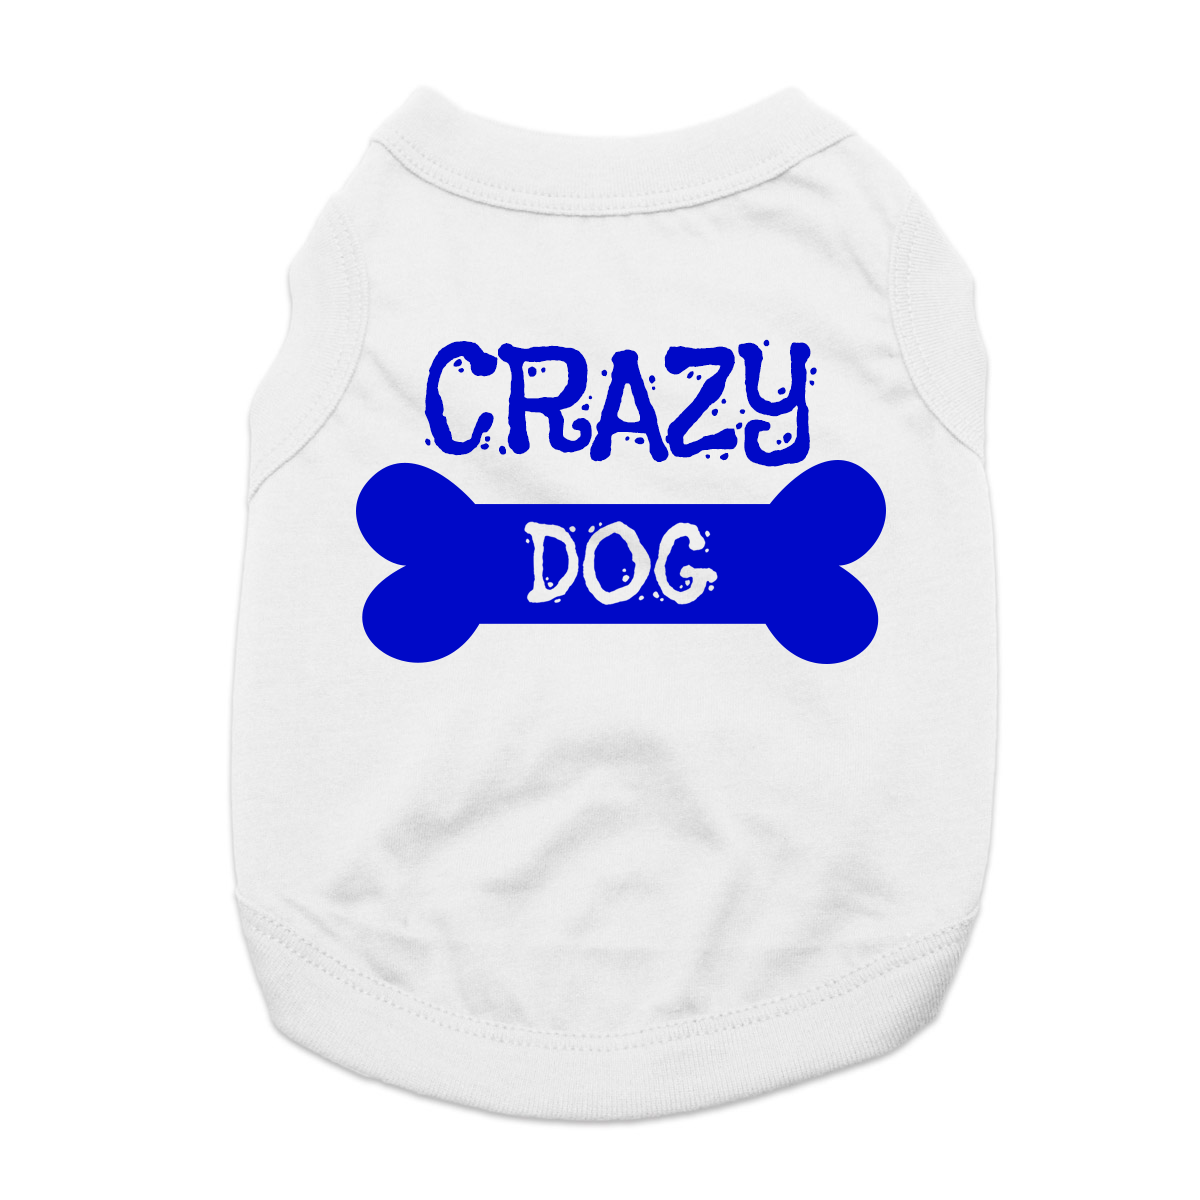 Crazy Dog Shirt / Crazy Dog Mom Human Shirt - White with Blue Print